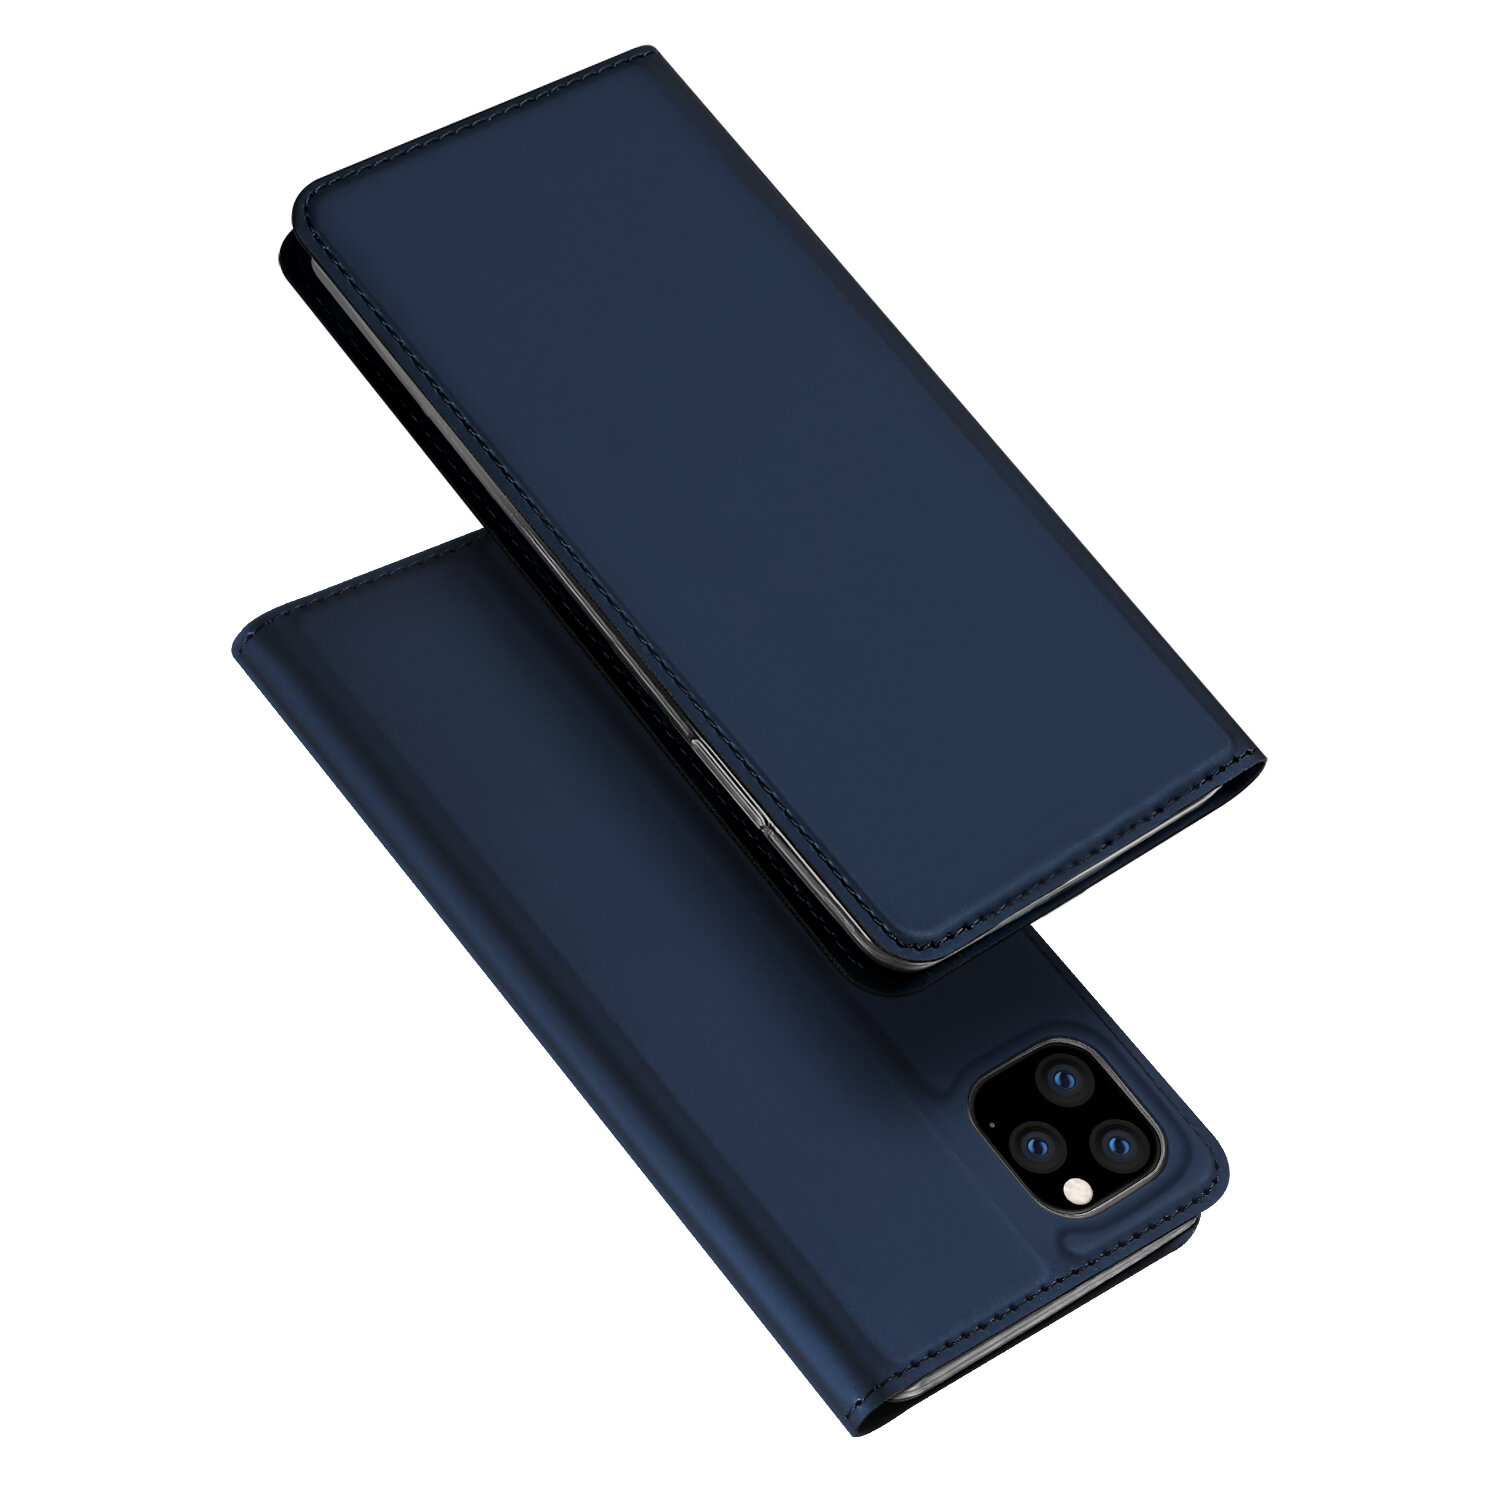 DUX DUCIS Flip Magnetic Shockproof with Card Slot PU Leather Protective Case for iPhone 11 Pro 5.8 inch